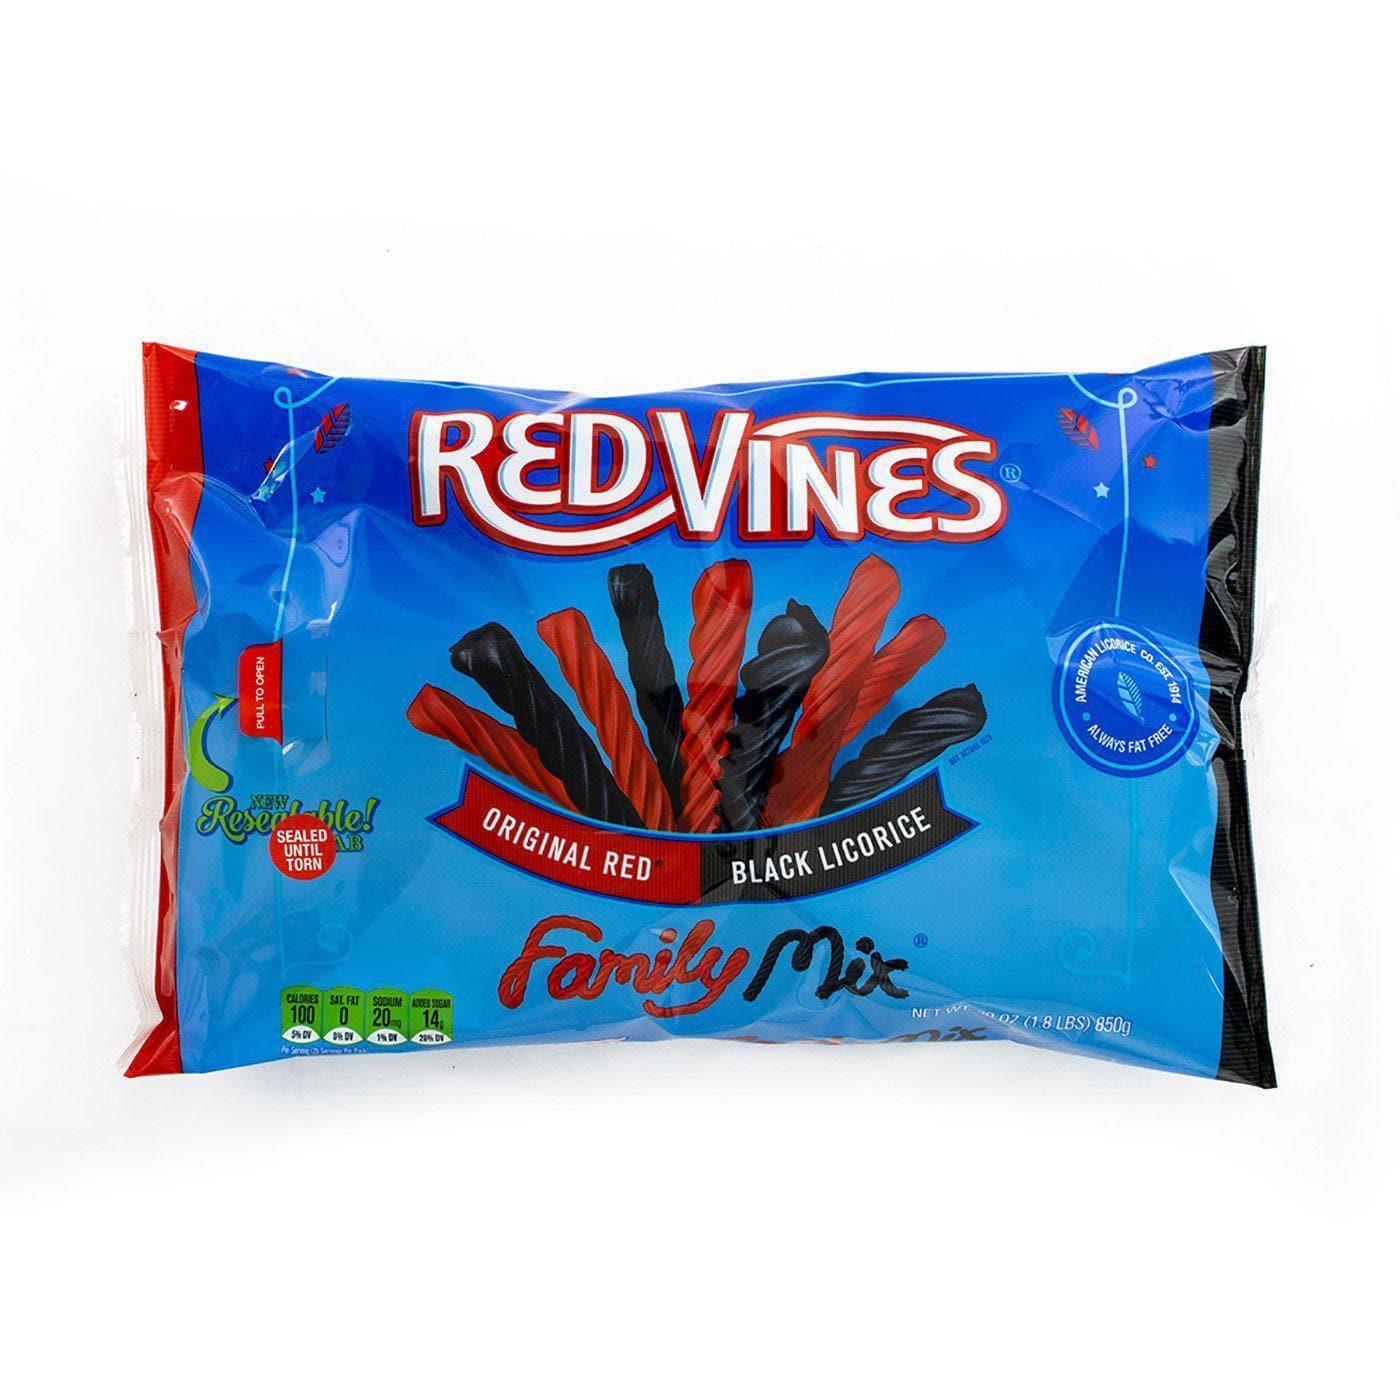 RED VINES Red & Black Licorice Family Mix, 30oz Bag